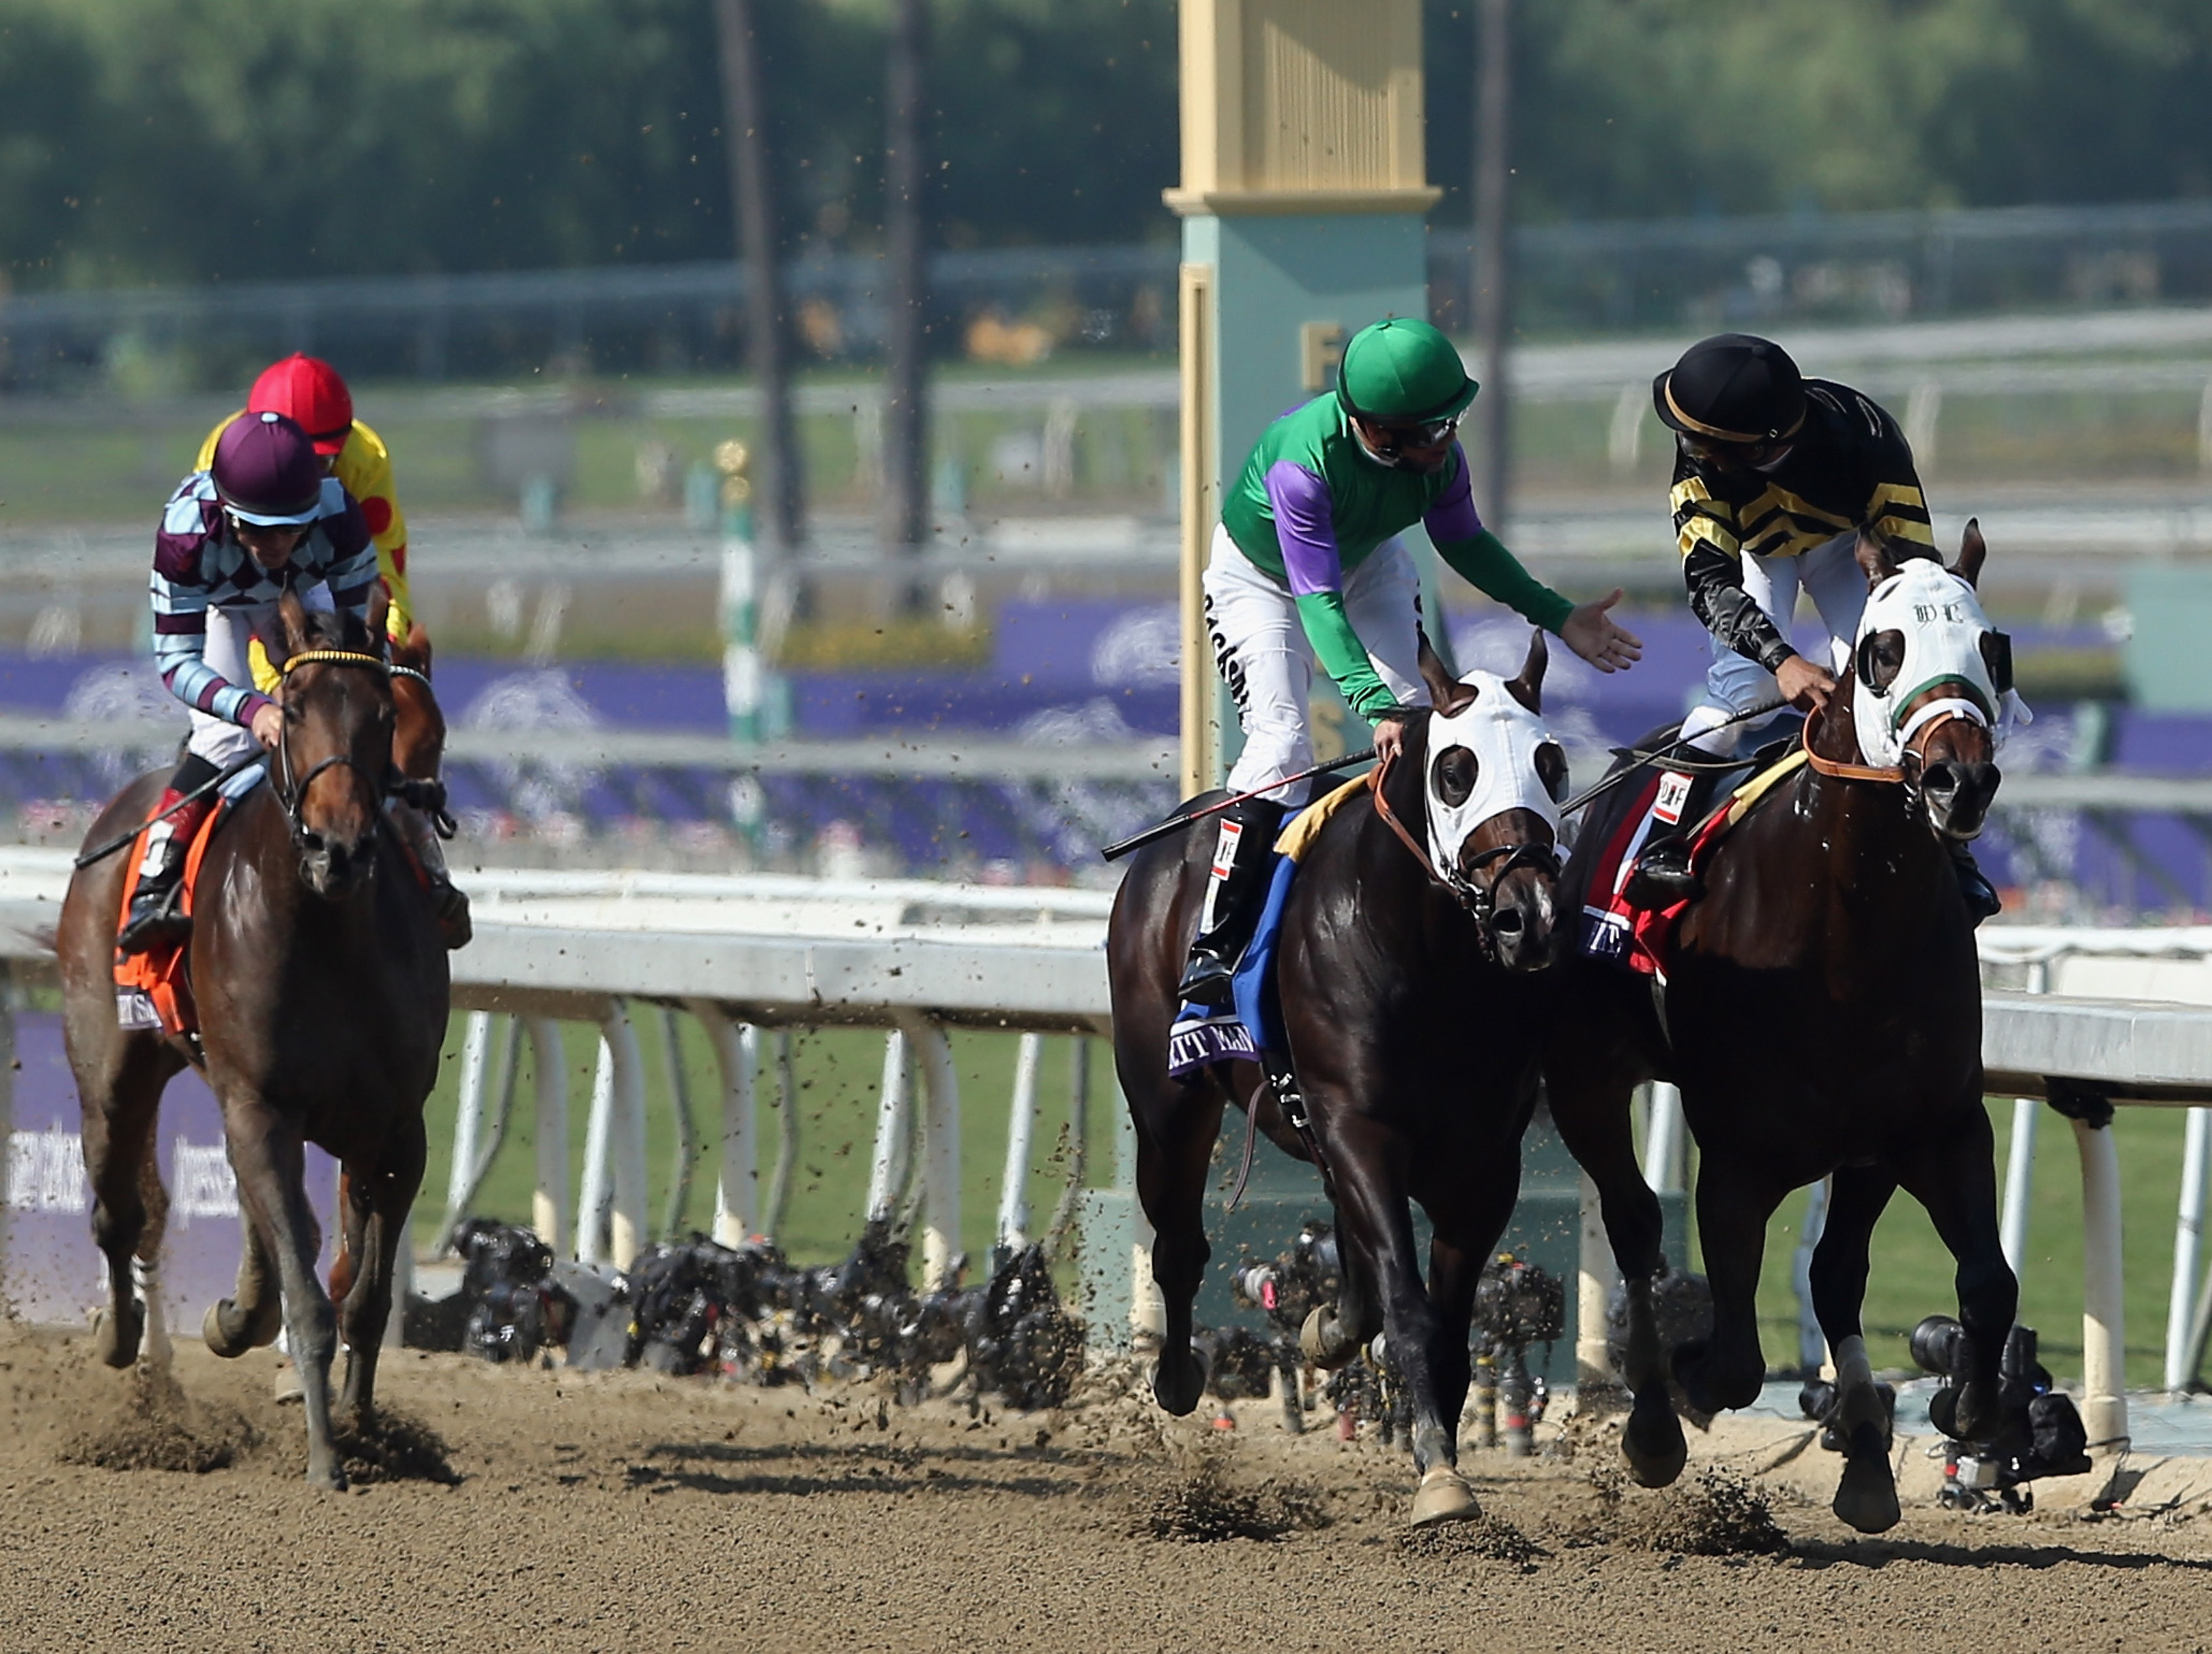 Merit Man finishing second to Hightail in the Breeders' Cup Juvenile Sprint.